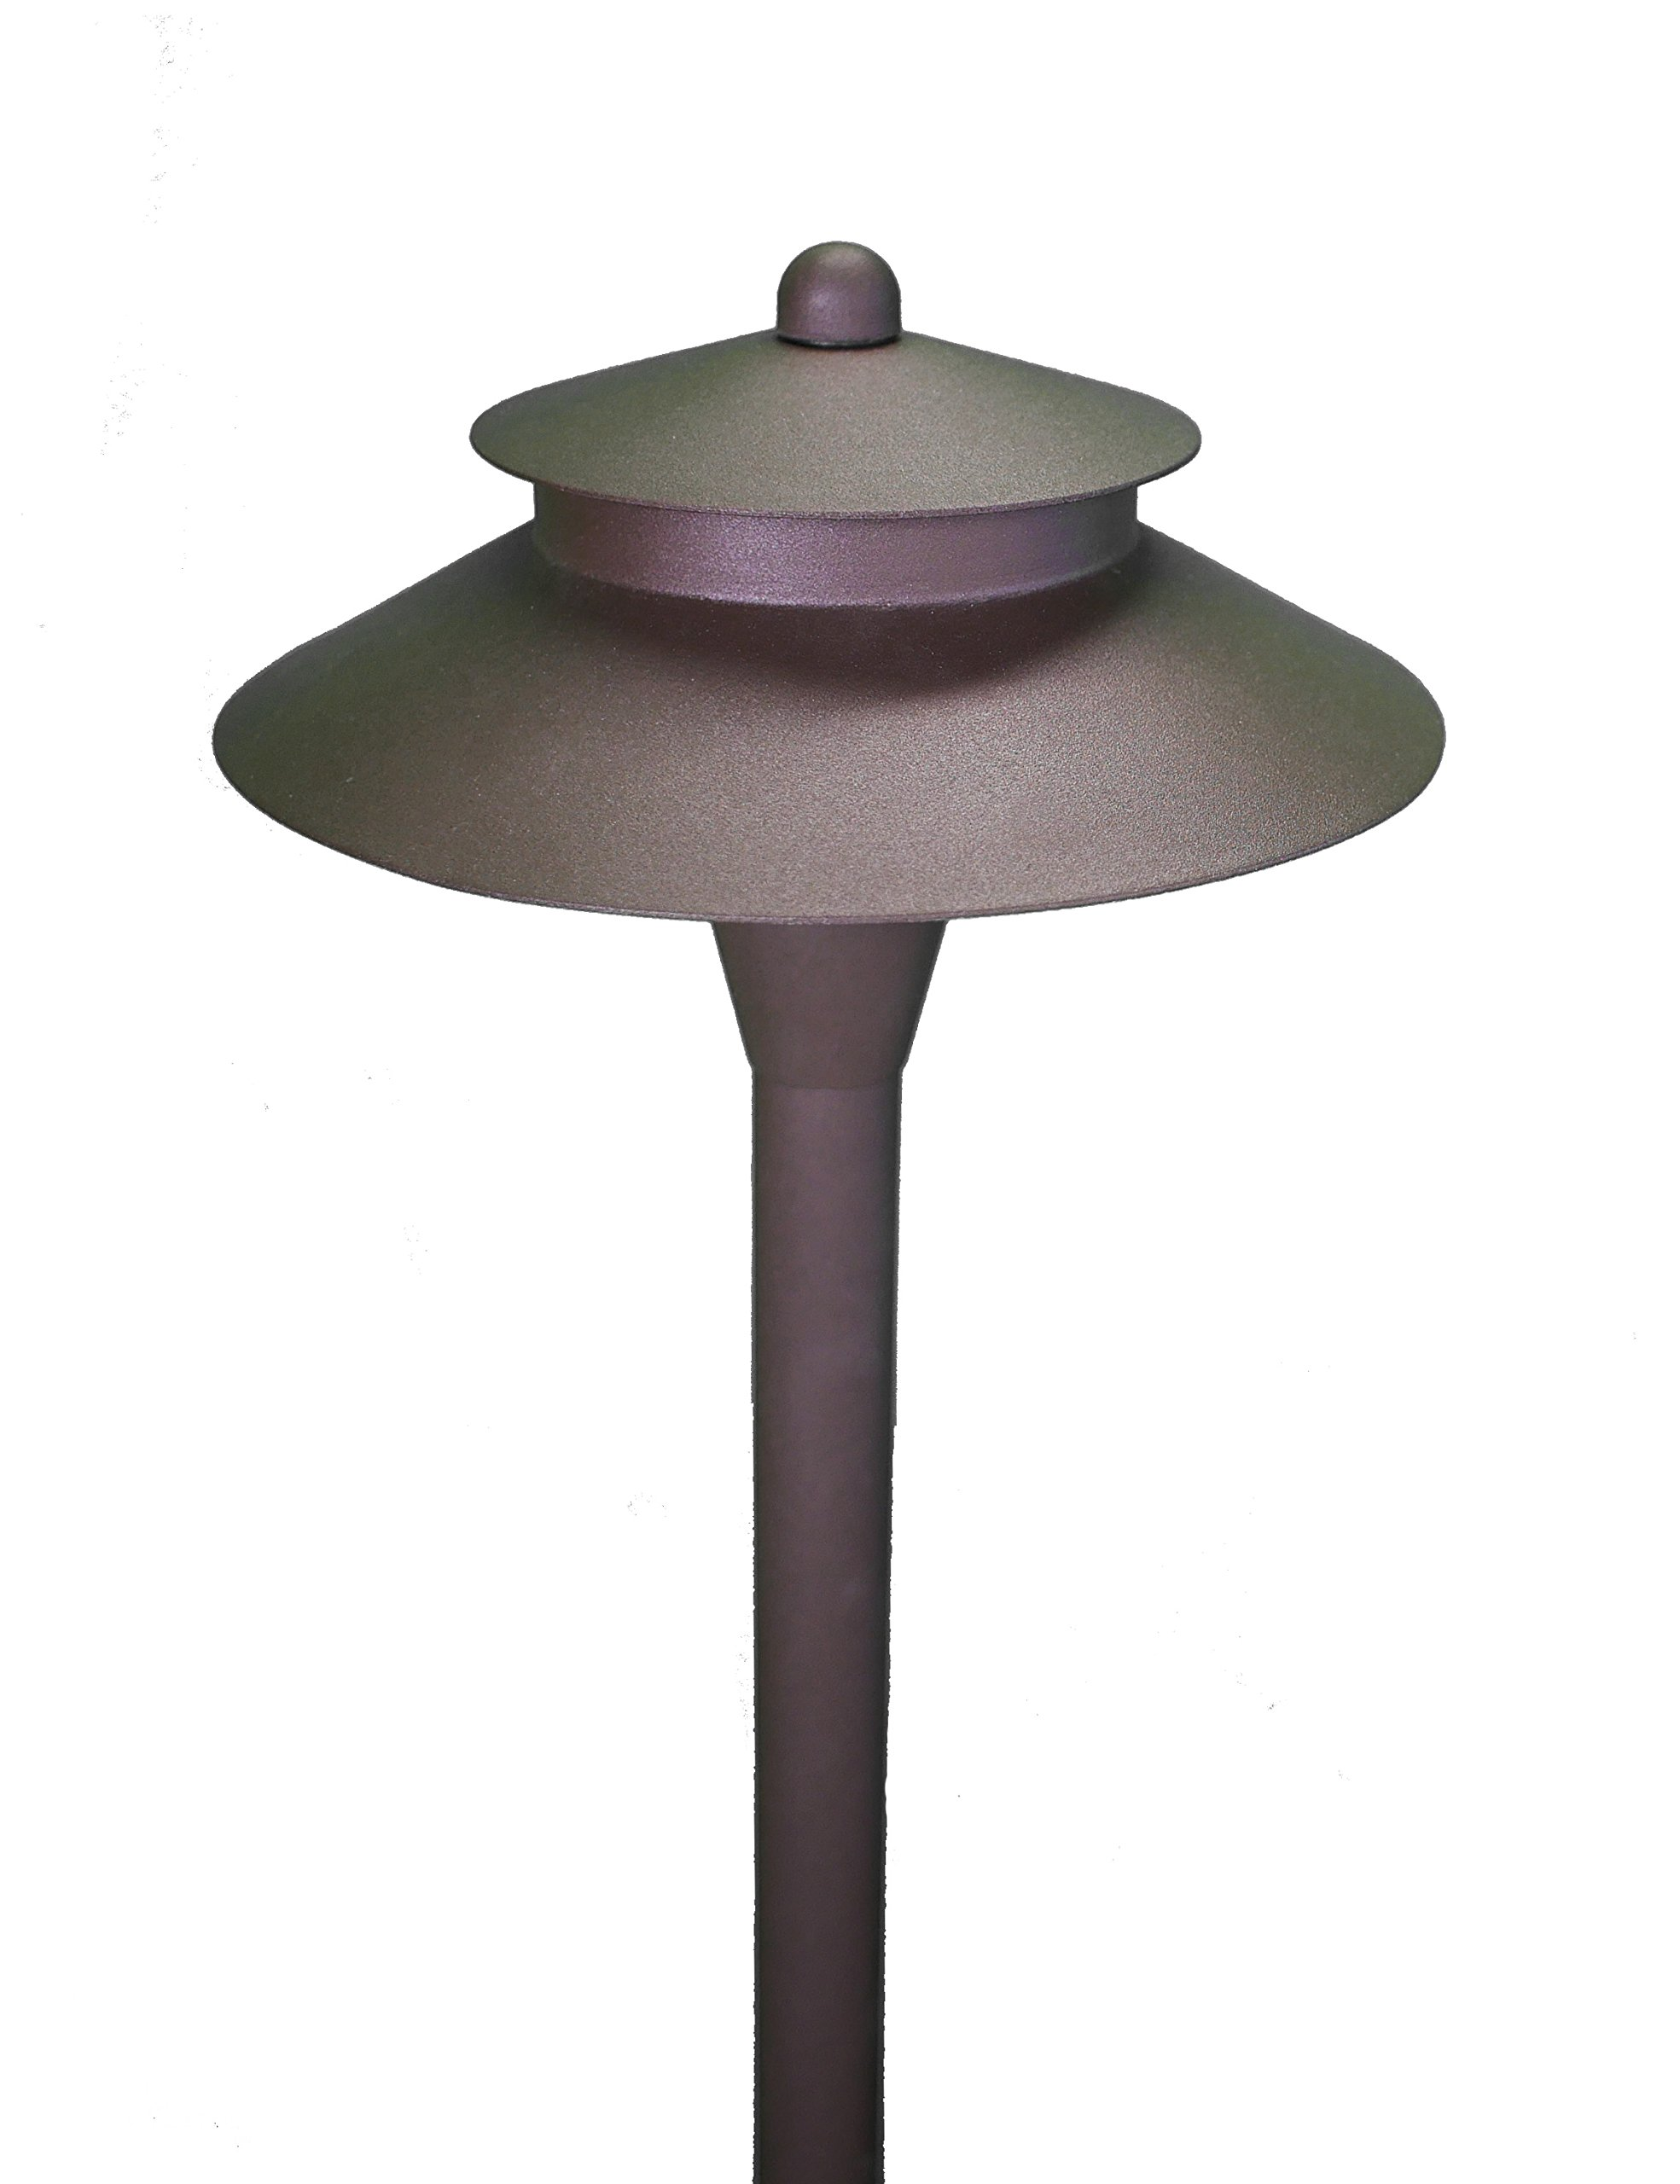 LED Pathway Light Integrated LED - Bronzed Aluminum -Low Voltage LED Light Outdoor Landscape Pagoda Mushroom Security Garden Light for Beautiful Bright Long Lasting Home Patio Deck Pool Area